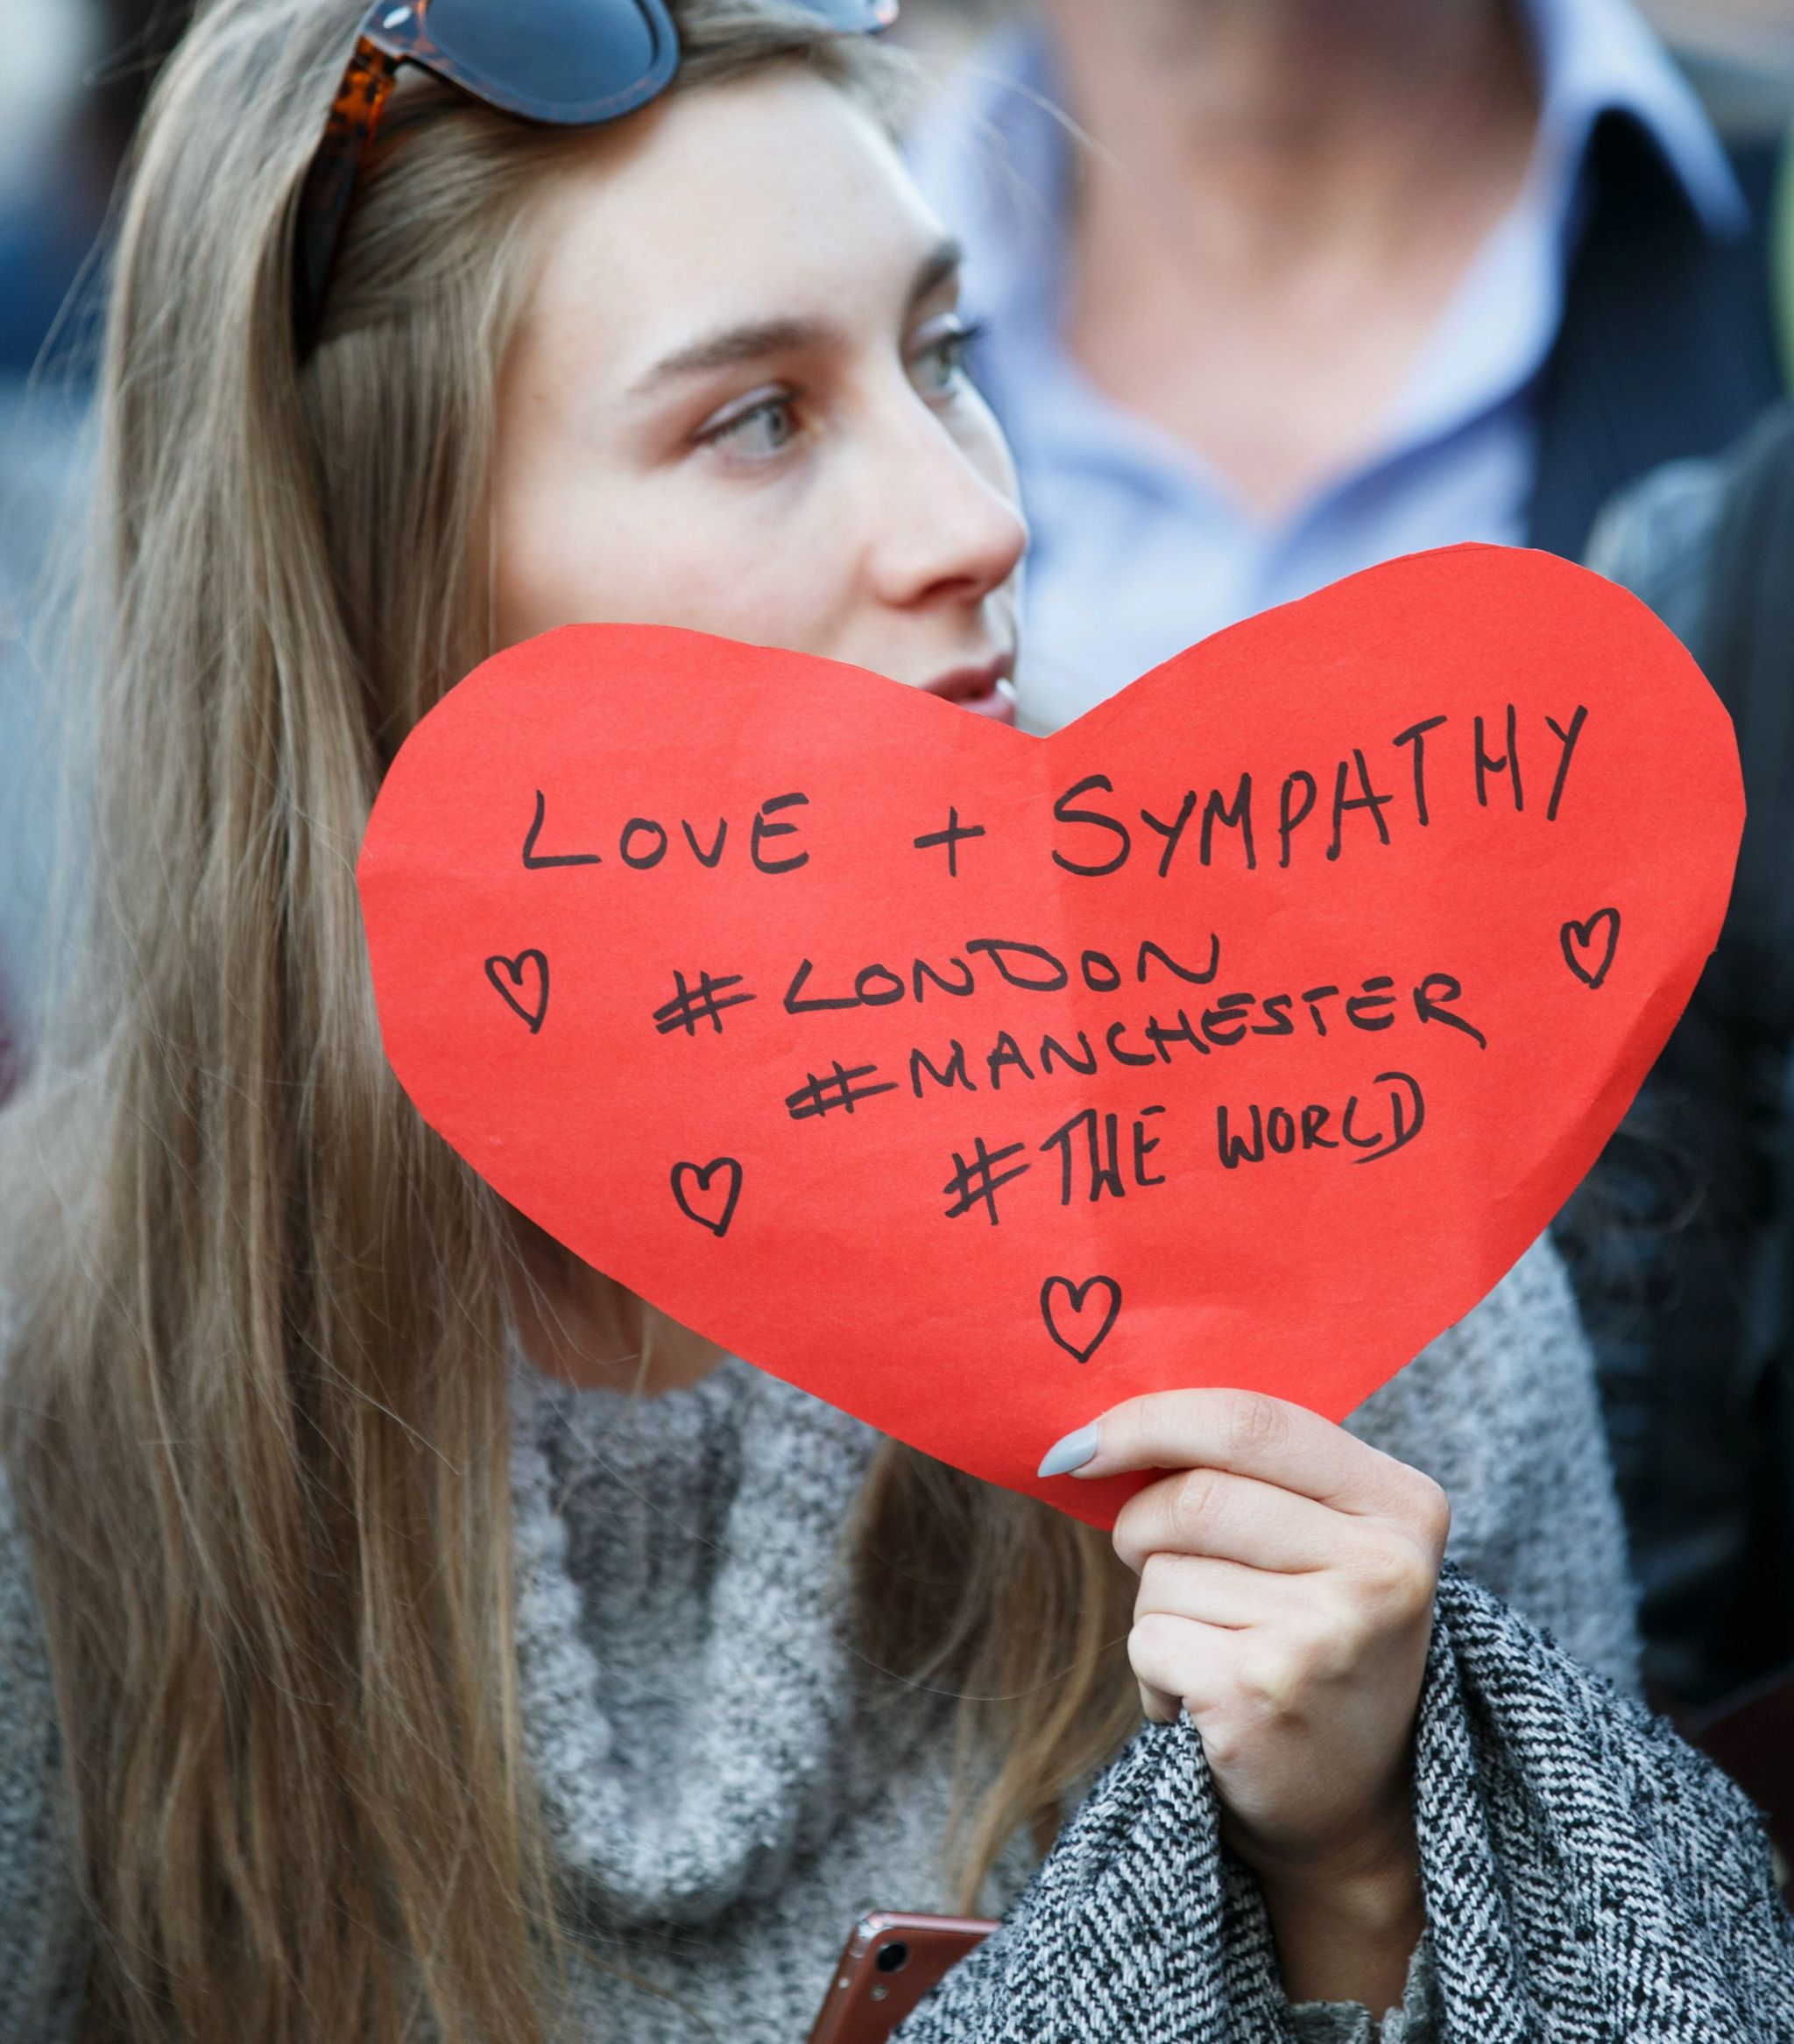 A woman holds a sign saying love and sympathy - London, Manchester and the world